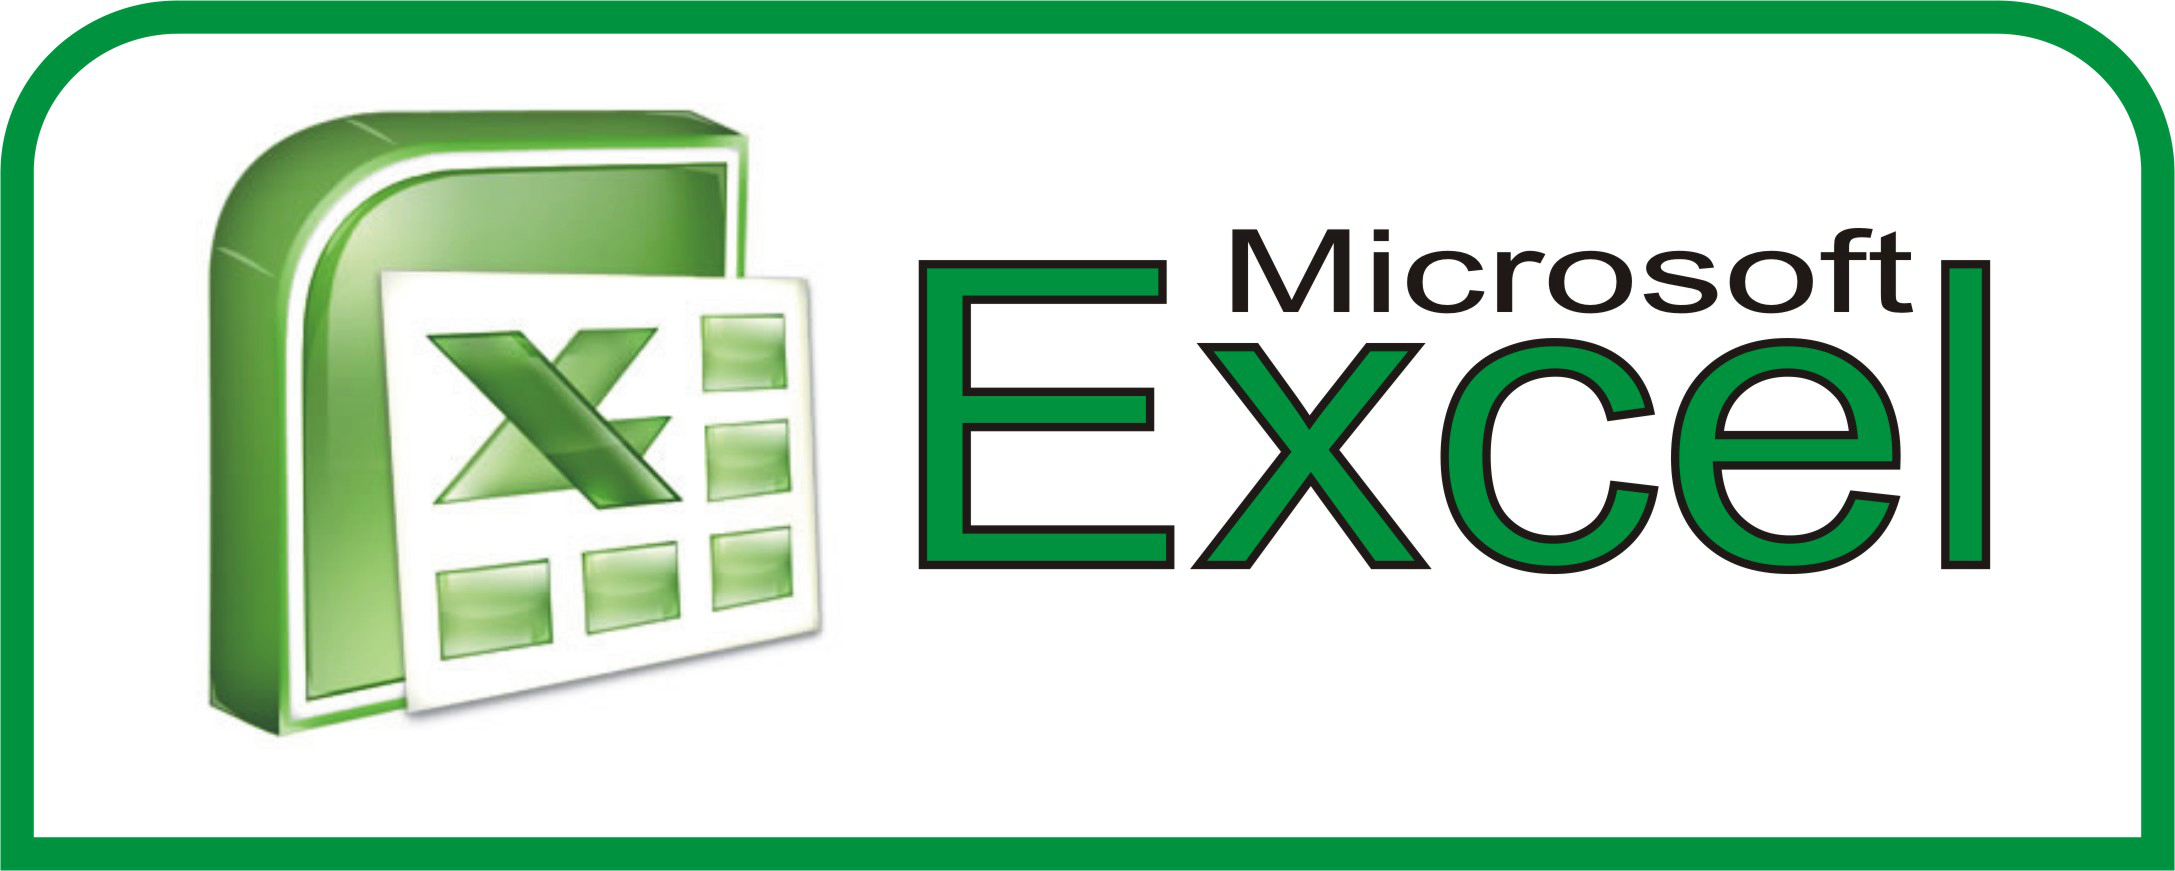 Ediblewildsus  Ravishing  Excel Shortcuts You Probably Didnt Know About  Techdissected With Inspiring How To Check Spelling In Excel Besides If And Then Excel Furthermore Excel Pick List With Cool Insert A Watermark In Excel Also Inserting Multiple Rows In Excel In Addition Excel Means And Excel Showing Formula Instead Of Result As Well As Name Error In Excel Additionally Excel Tutoring From Techdissectedcom With Ediblewildsus  Inspiring  Excel Shortcuts You Probably Didnt Know About  Techdissected With Cool How To Check Spelling In Excel Besides If And Then Excel Furthermore Excel Pick List And Ravishing Insert A Watermark In Excel Also Inserting Multiple Rows In Excel In Addition Excel Means From Techdissectedcom